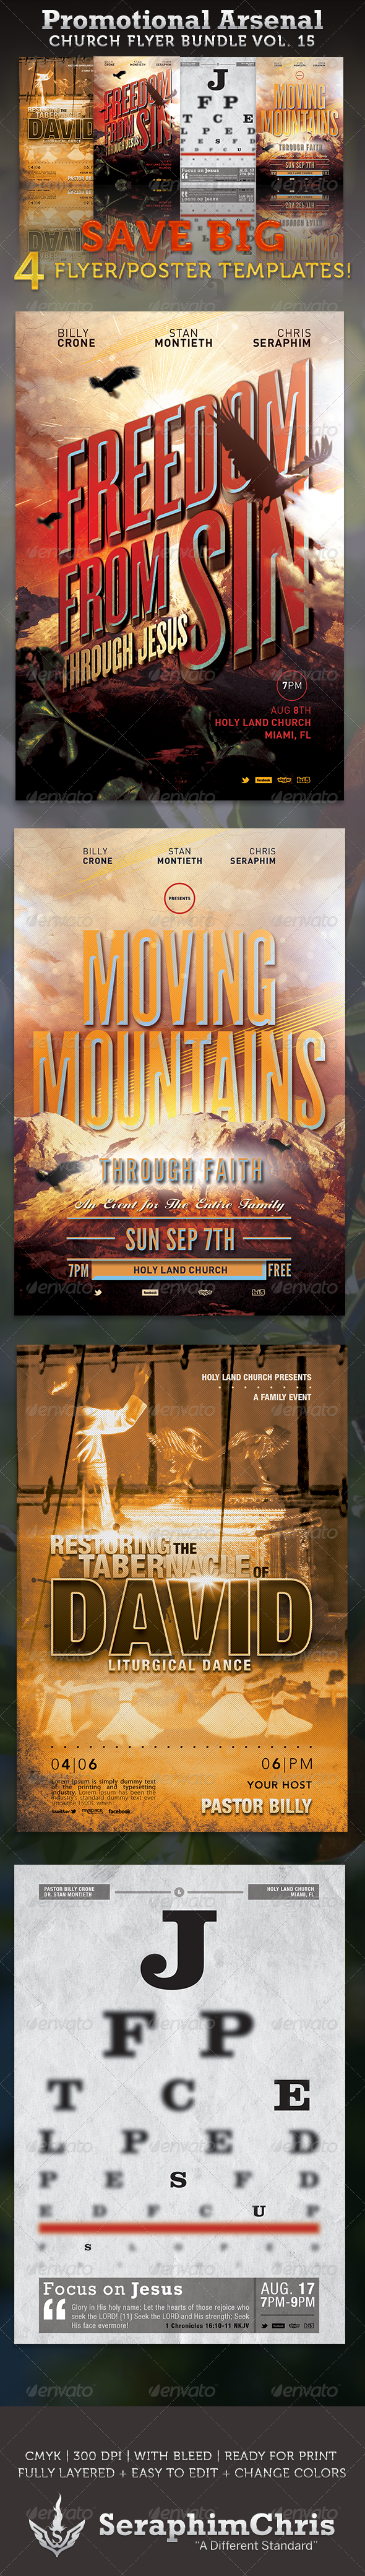 Promotional Arsenal Church Flyer Bundle 15  - Church Flyers